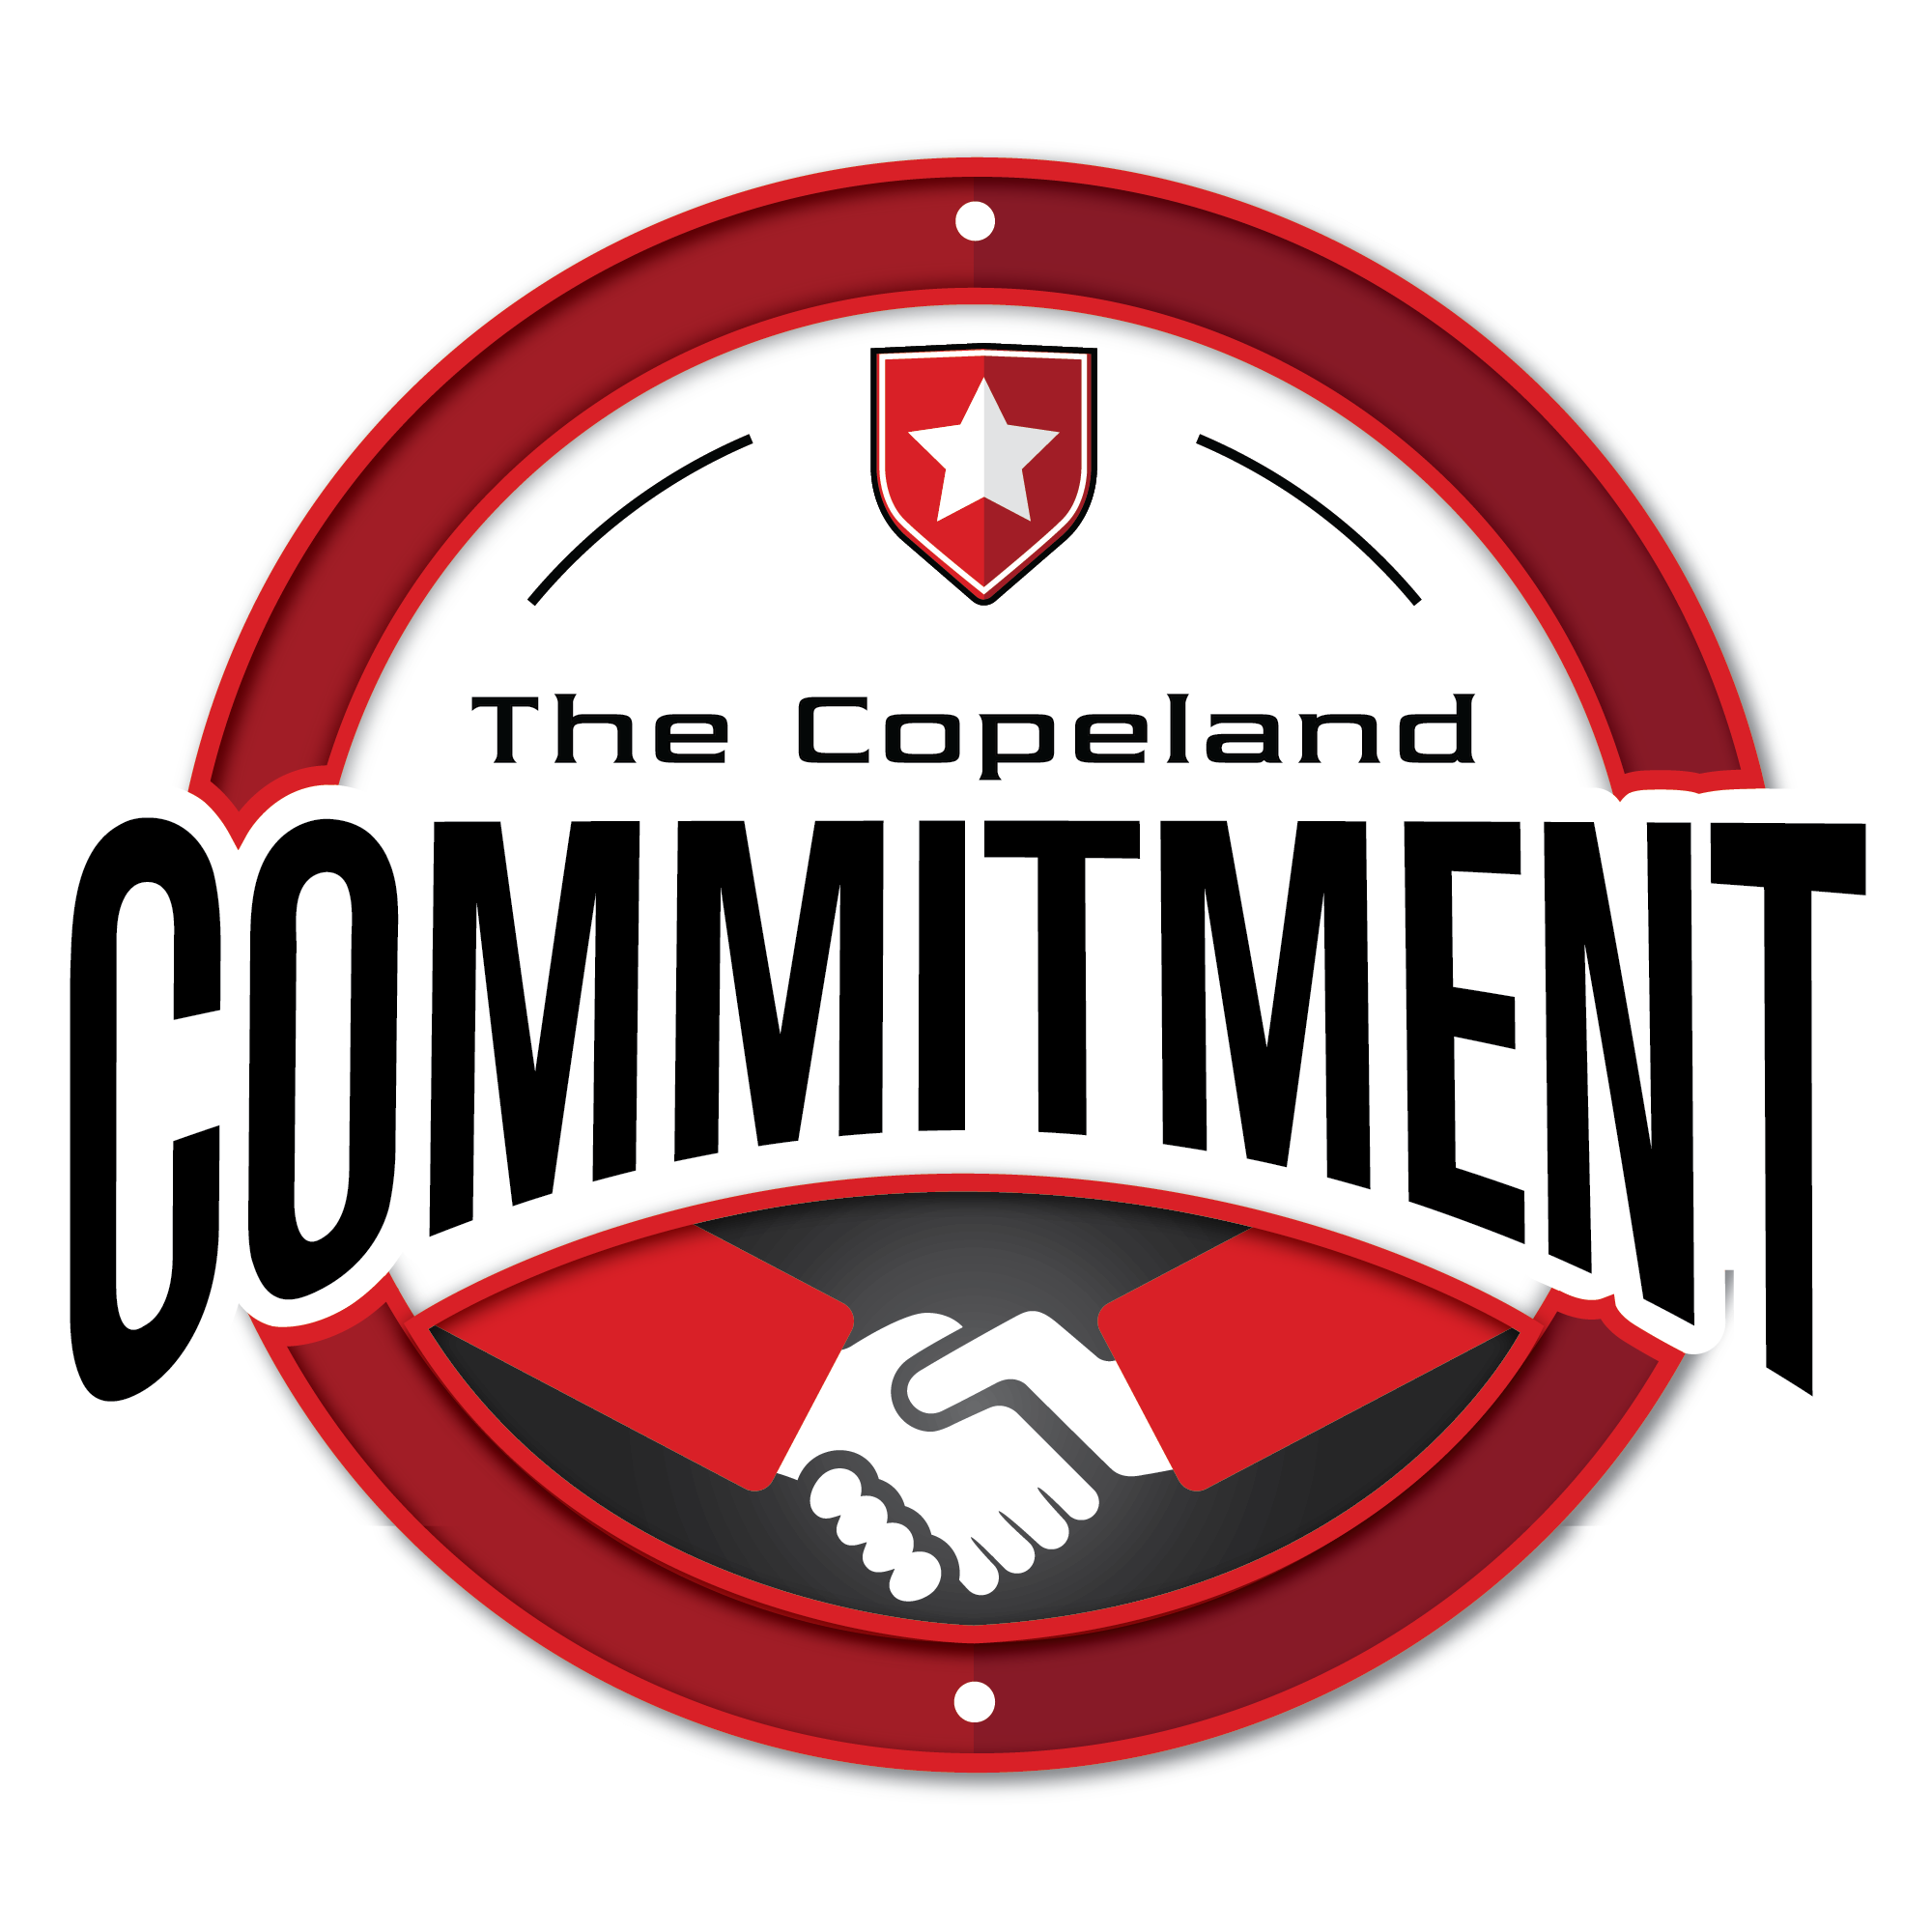 The Copeland Commitment